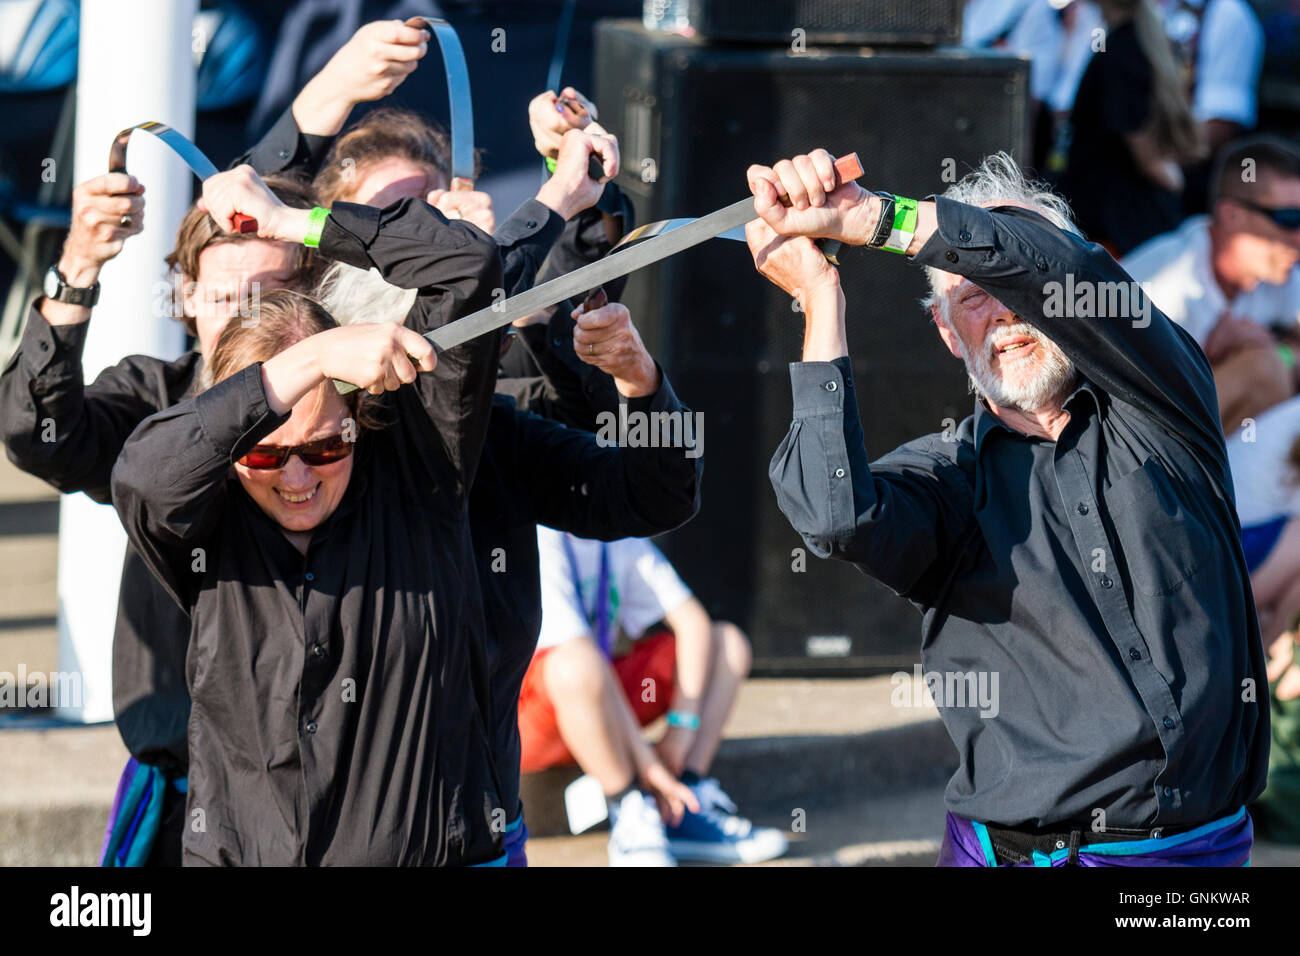 English Folk dancers, the Hawksword Rapper Morris men dancing with flat blade knifes on an outdoors wooden deck. - Stock Image